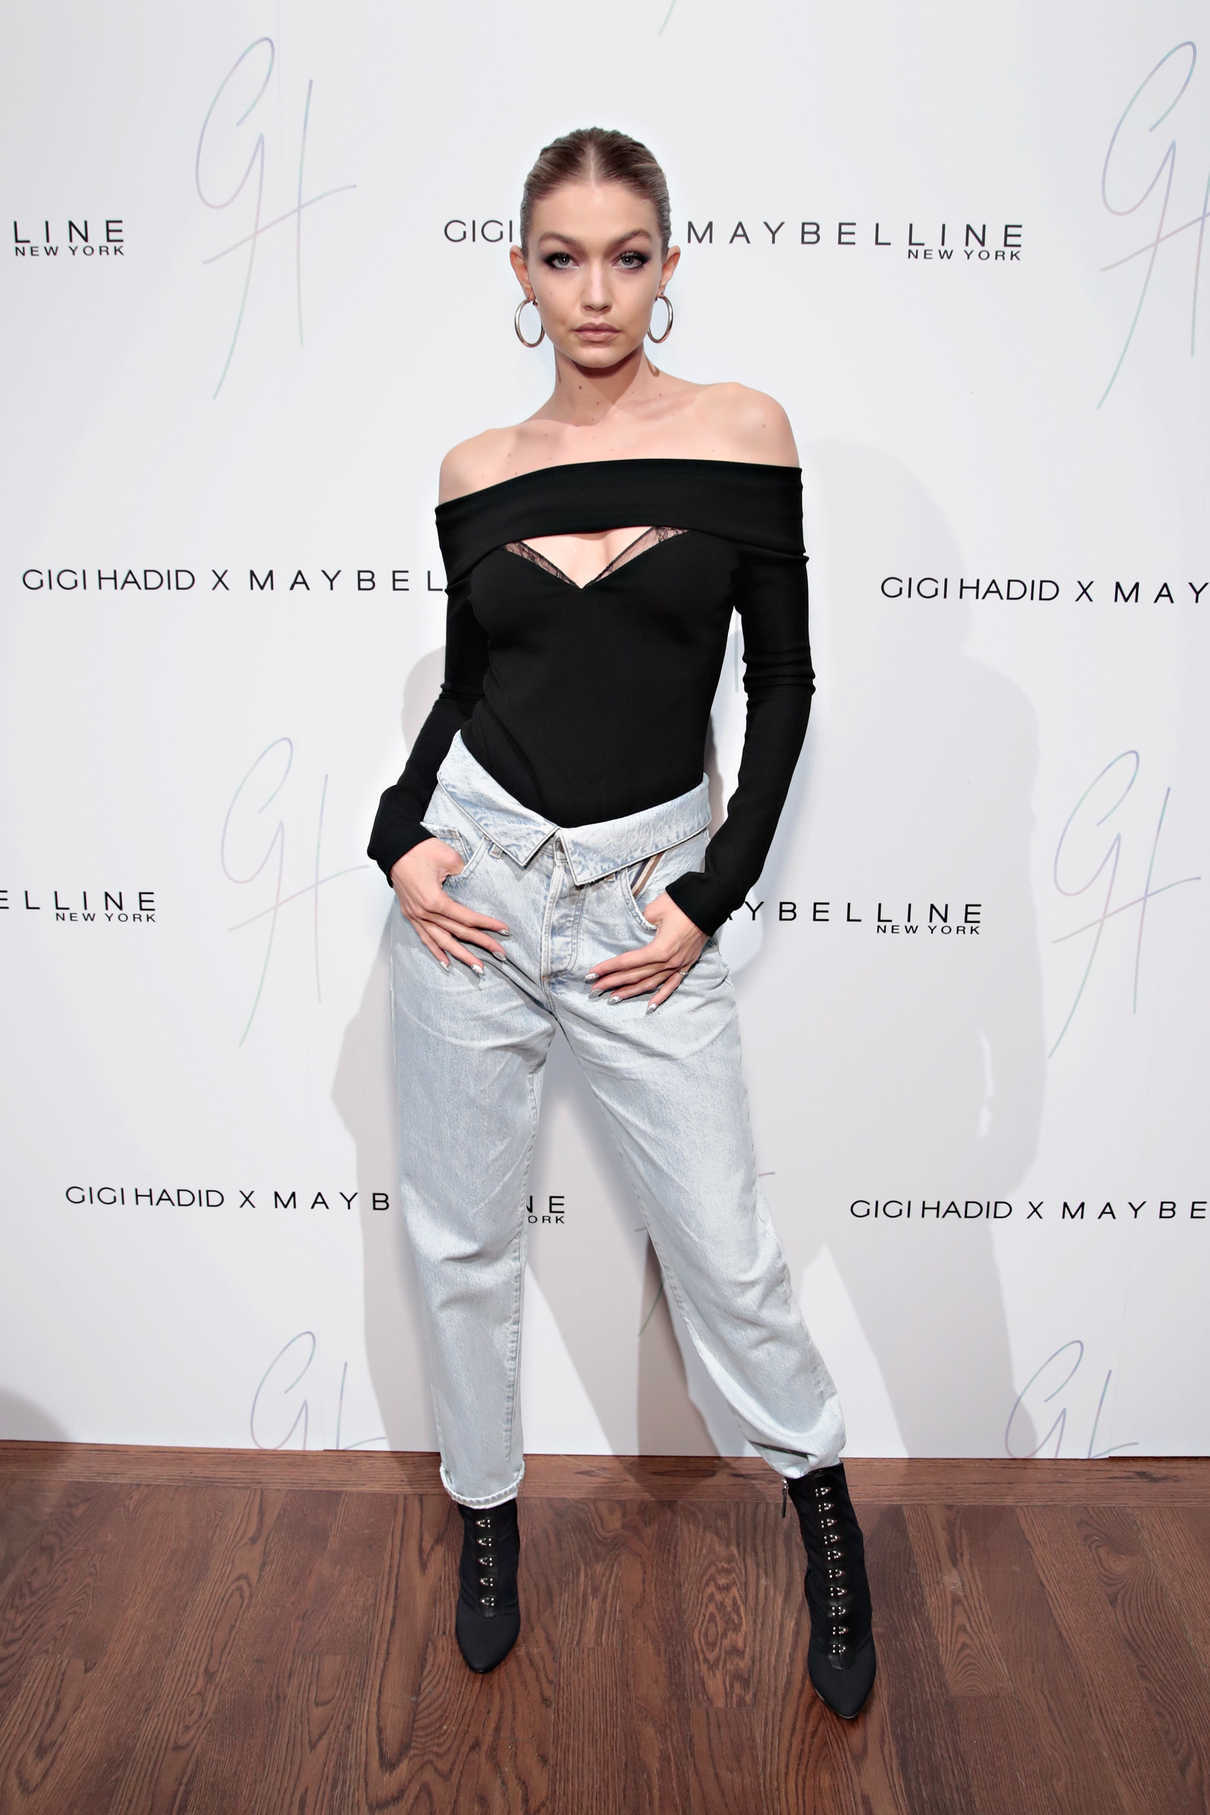 Gigi Hadid Attends the Gigi Hadid x Maybelline New York International Launch Party in NYC 11/03/2017-2